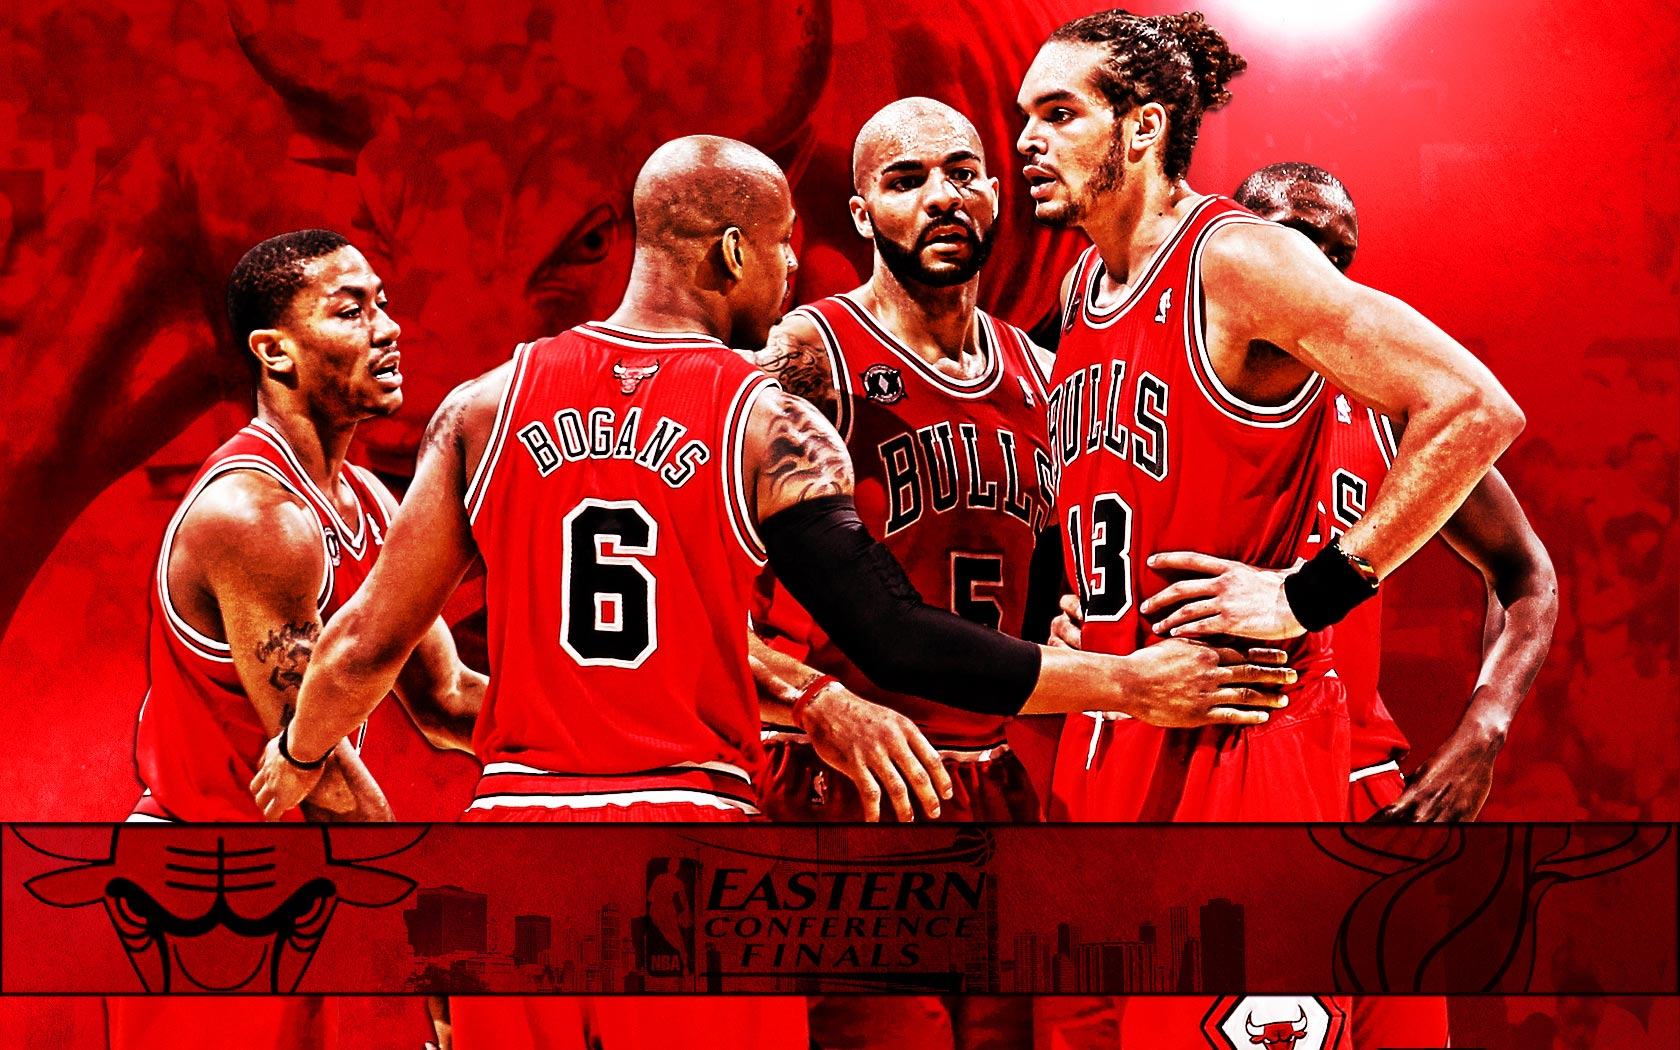 Next is widescreen wallpaper of Chicago Bulls team made for 2011 NBA ...